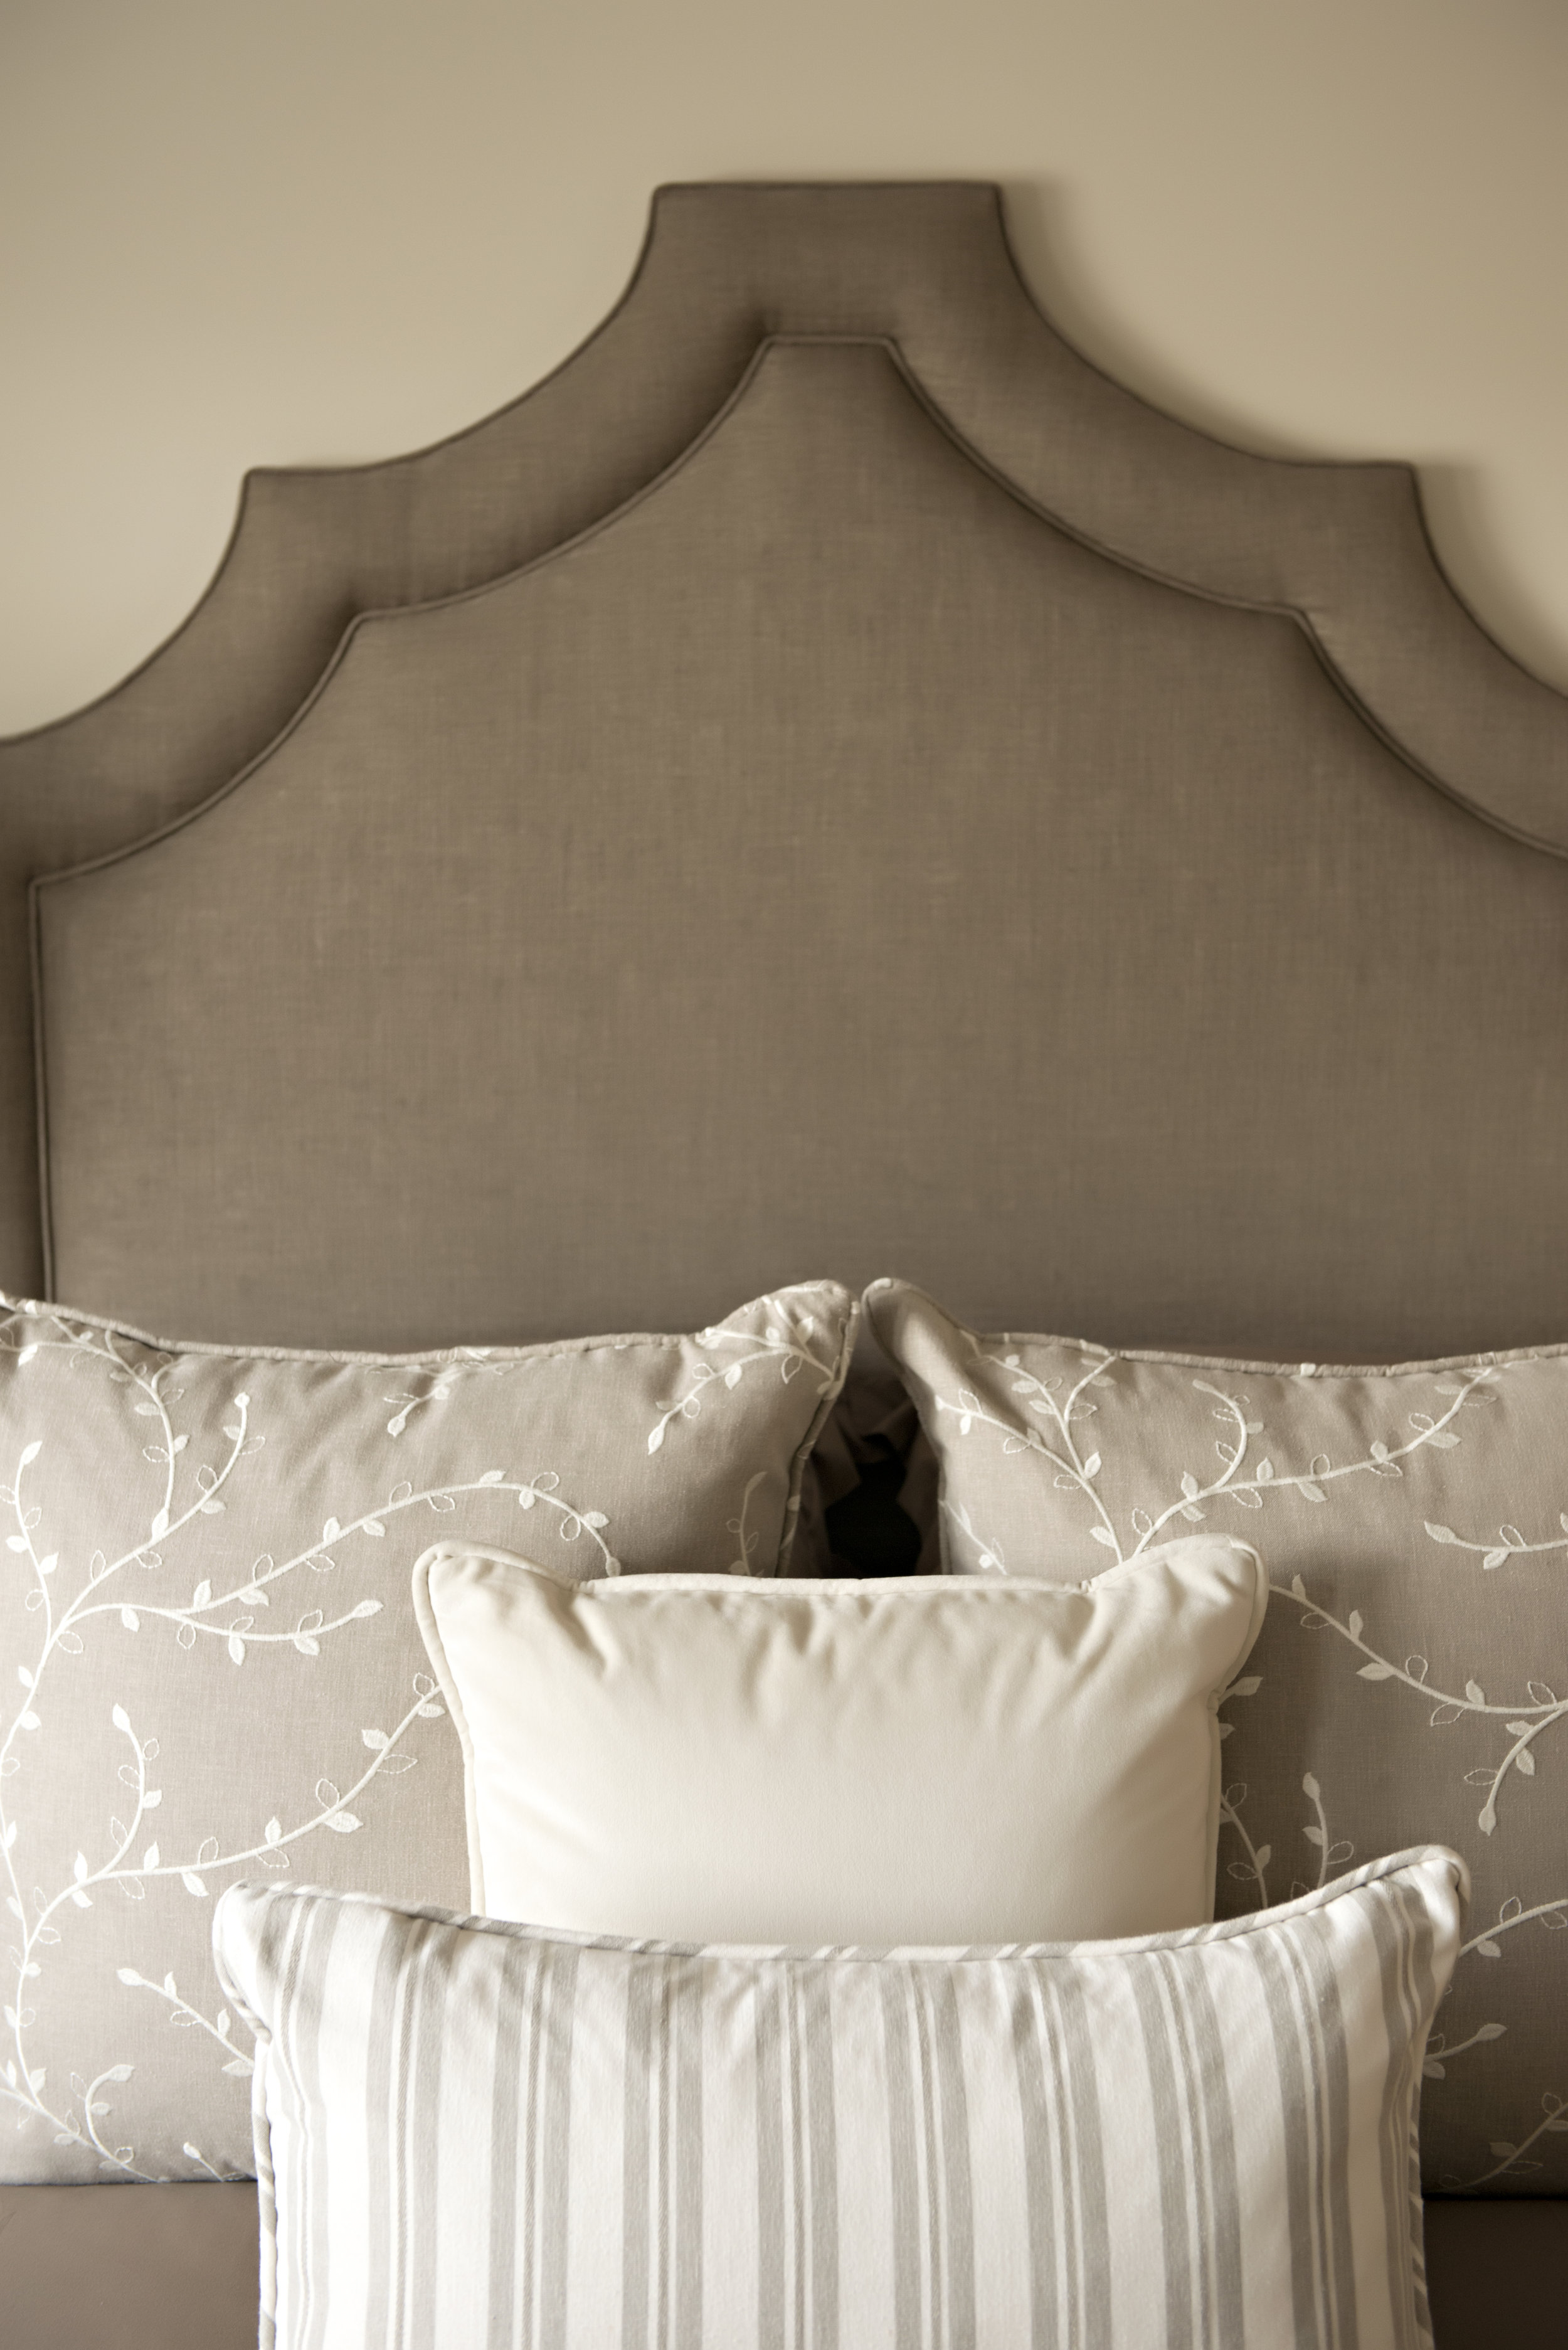 Interior-Design-Cedar-Brae-Project-Headboard-Taupe